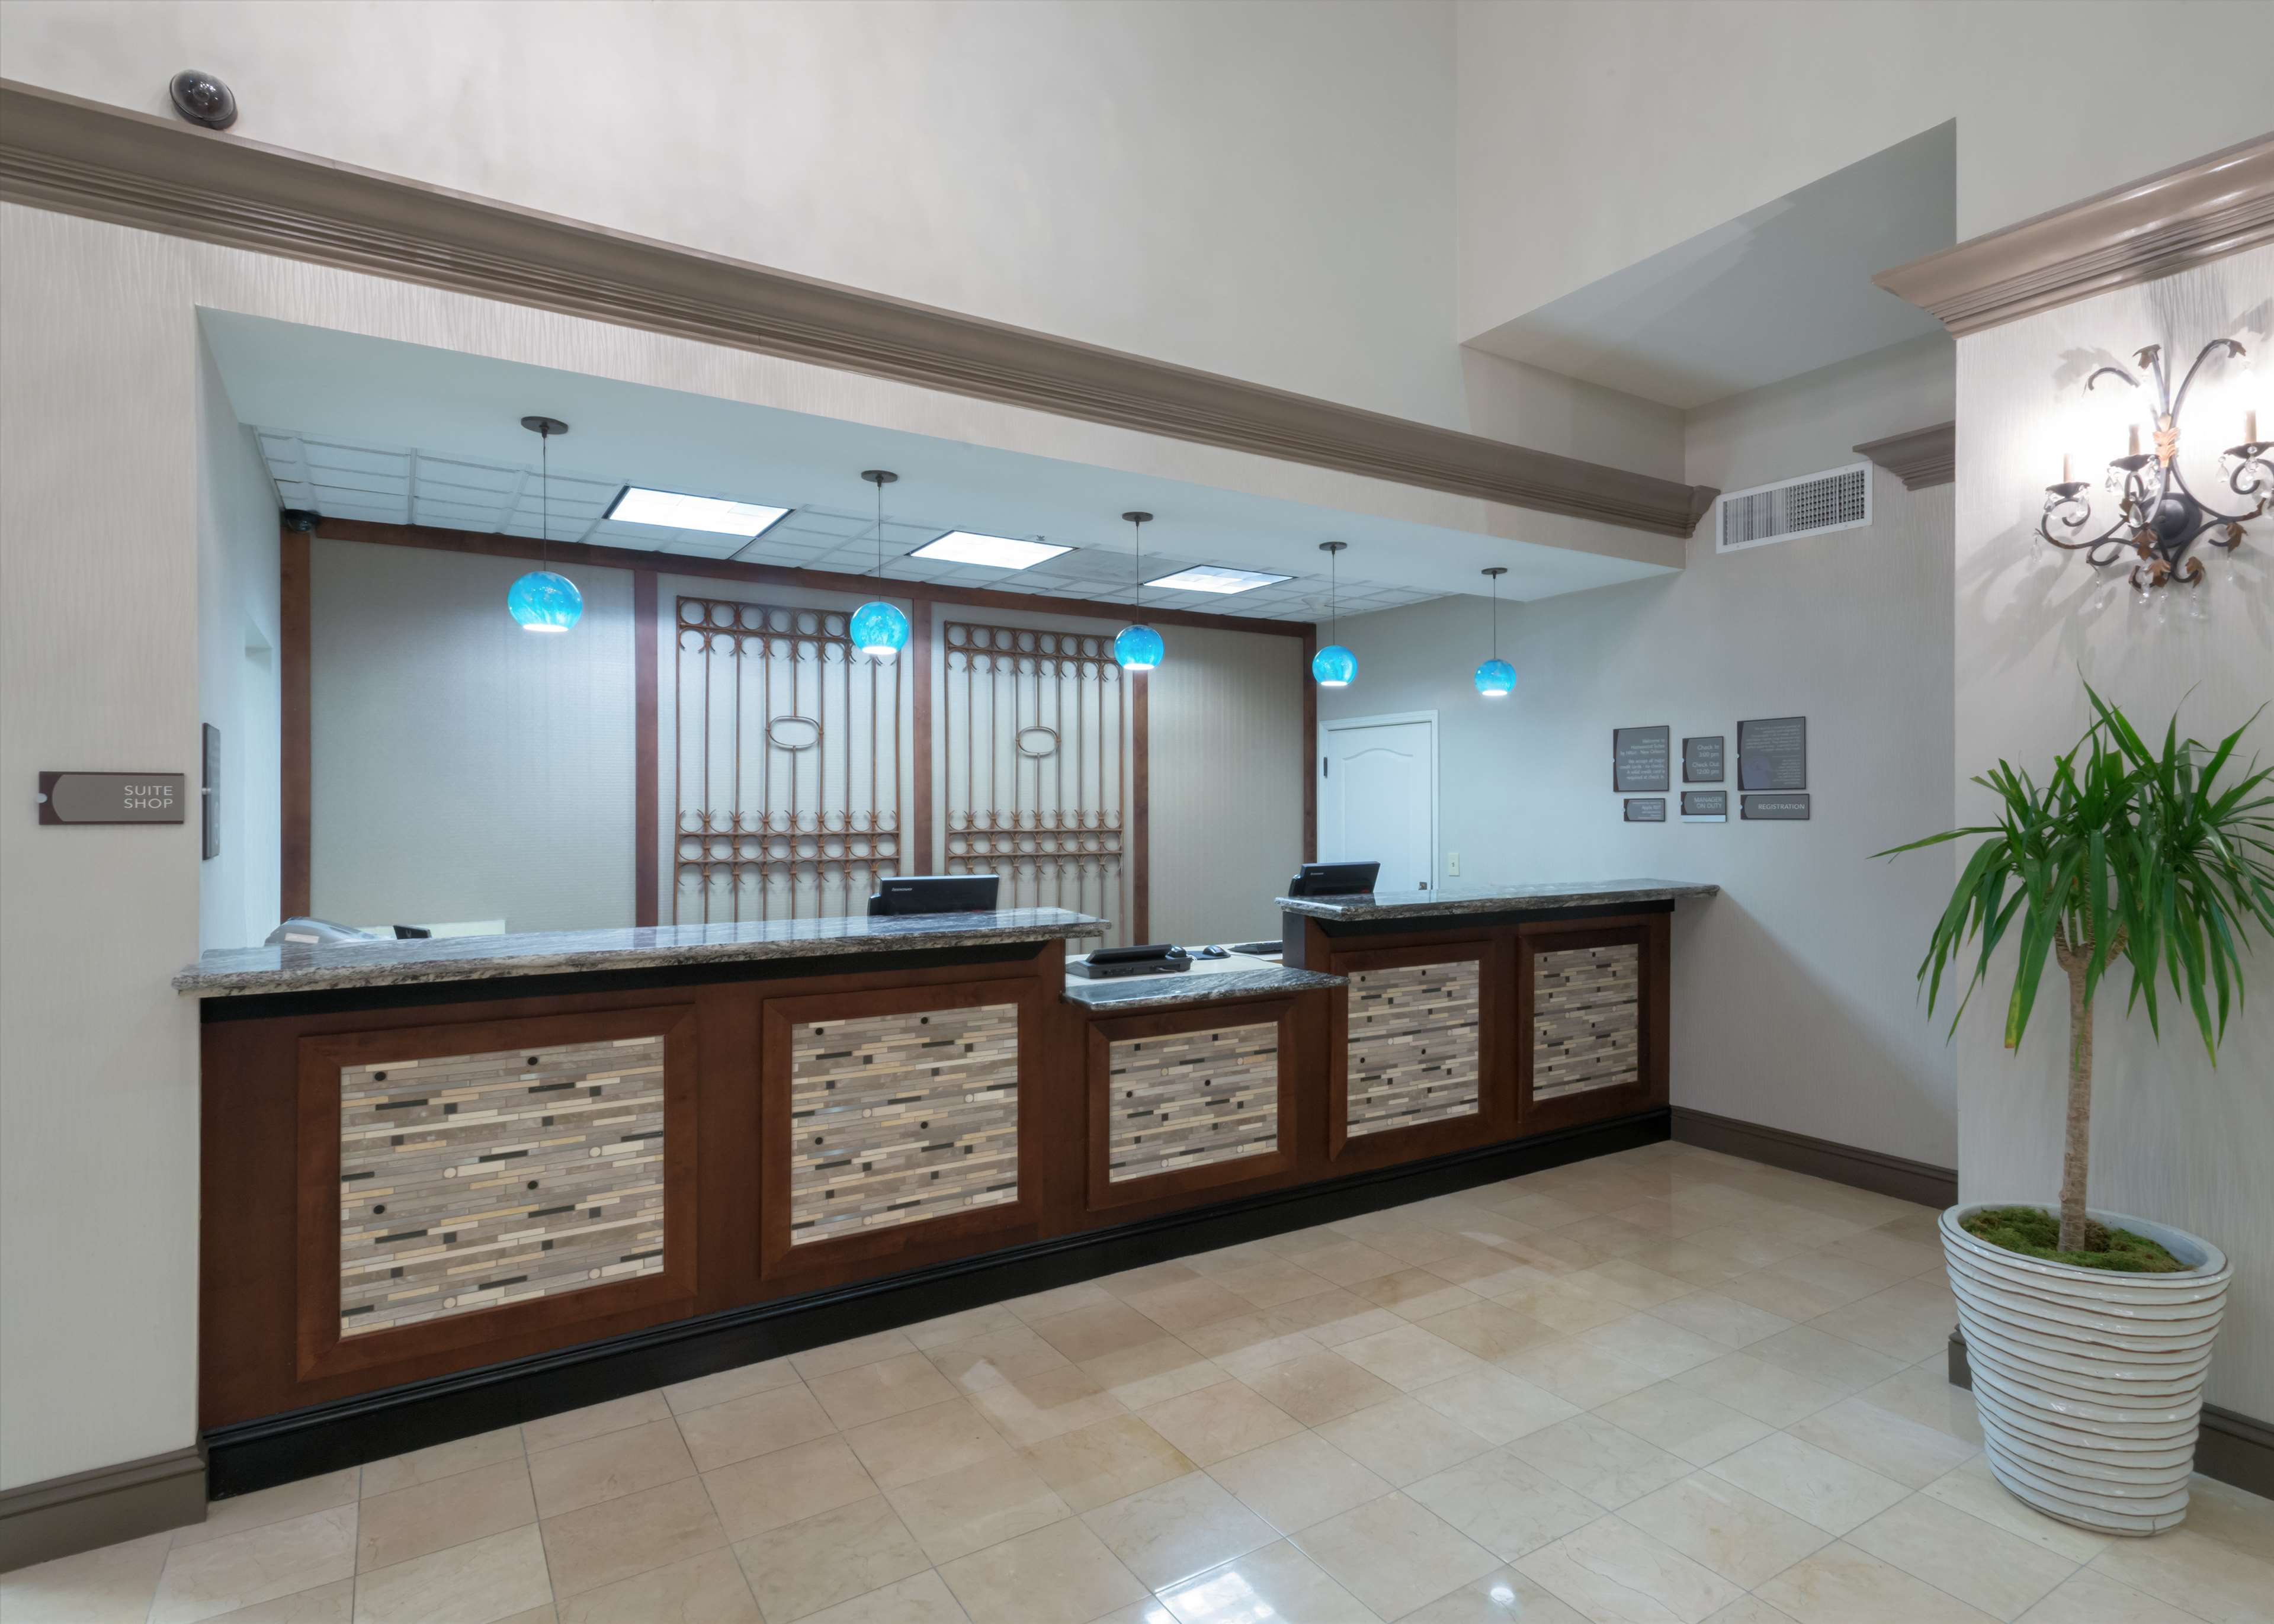 Homewood Suites by Hilton New Orleans image 2